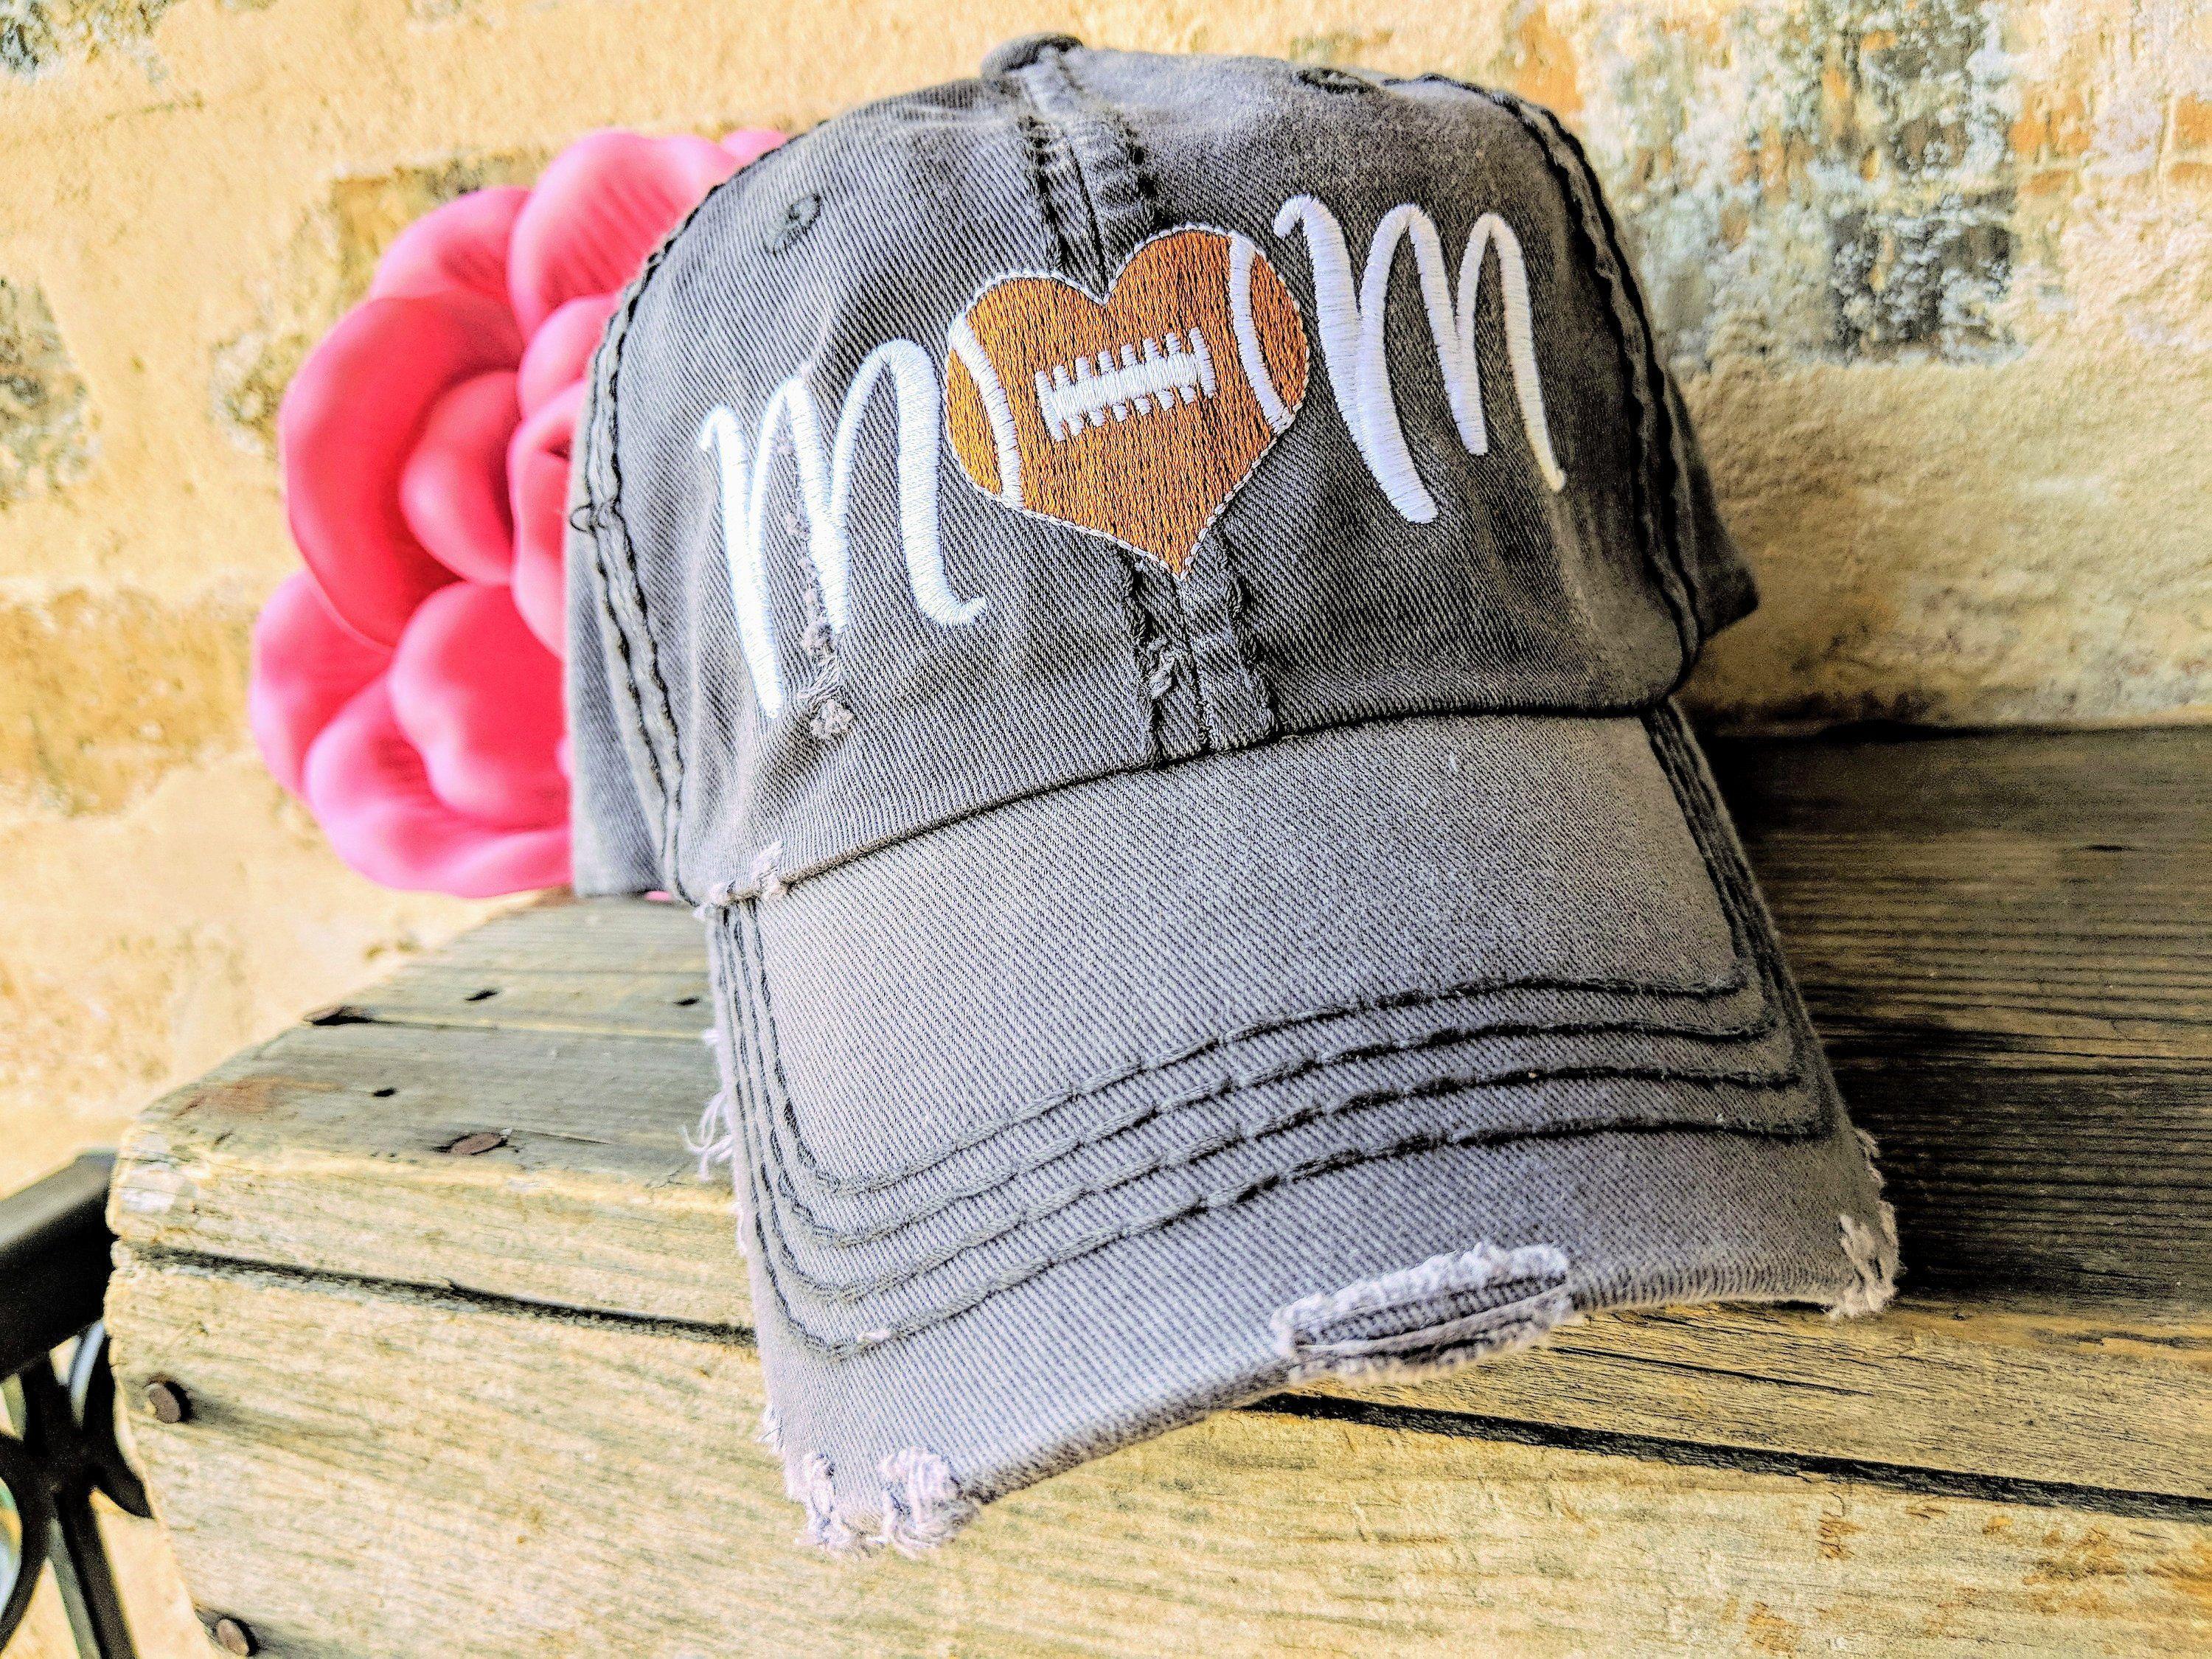 Football Mom Hat Football Team Hat Football Mom Football Mom Baseball Cap Football Football Mom Clothing Footba Mom Hats Football Mom Football Mom Gifts